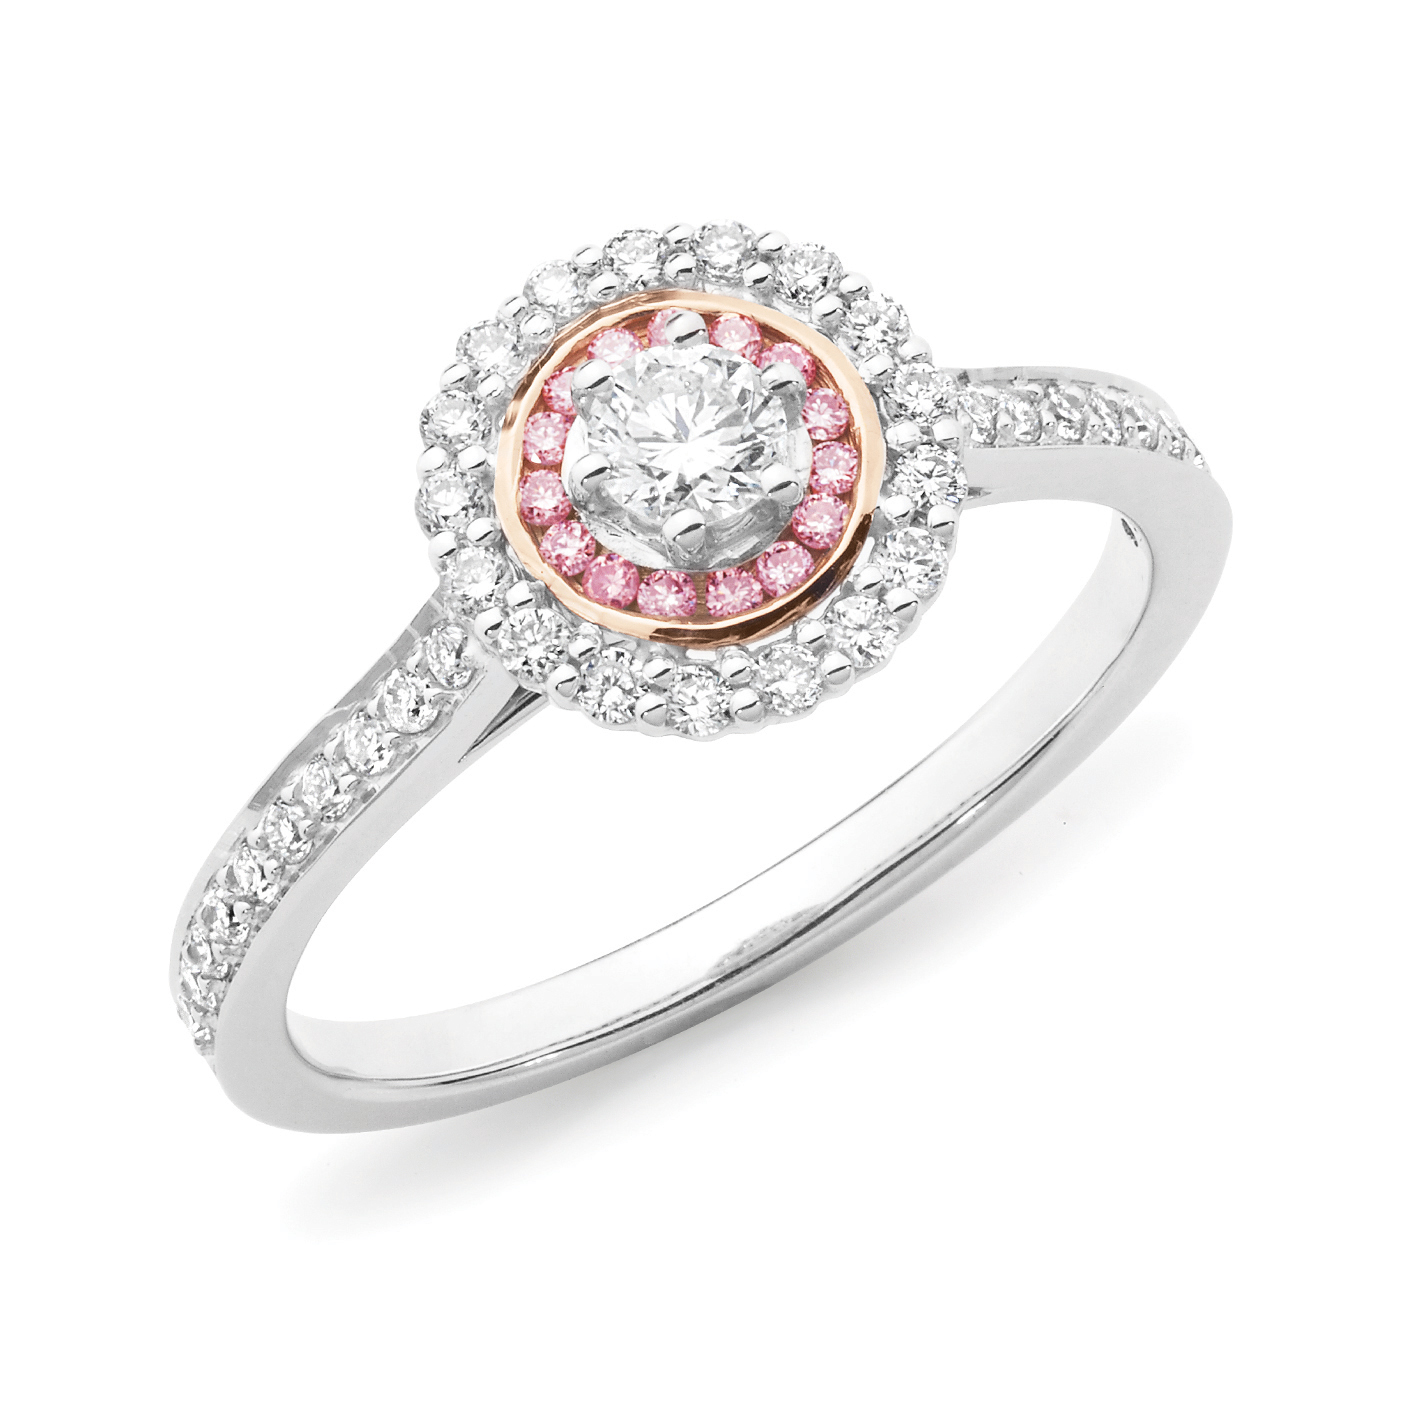 jewellery rings view white engagement pink diamond page collection and details